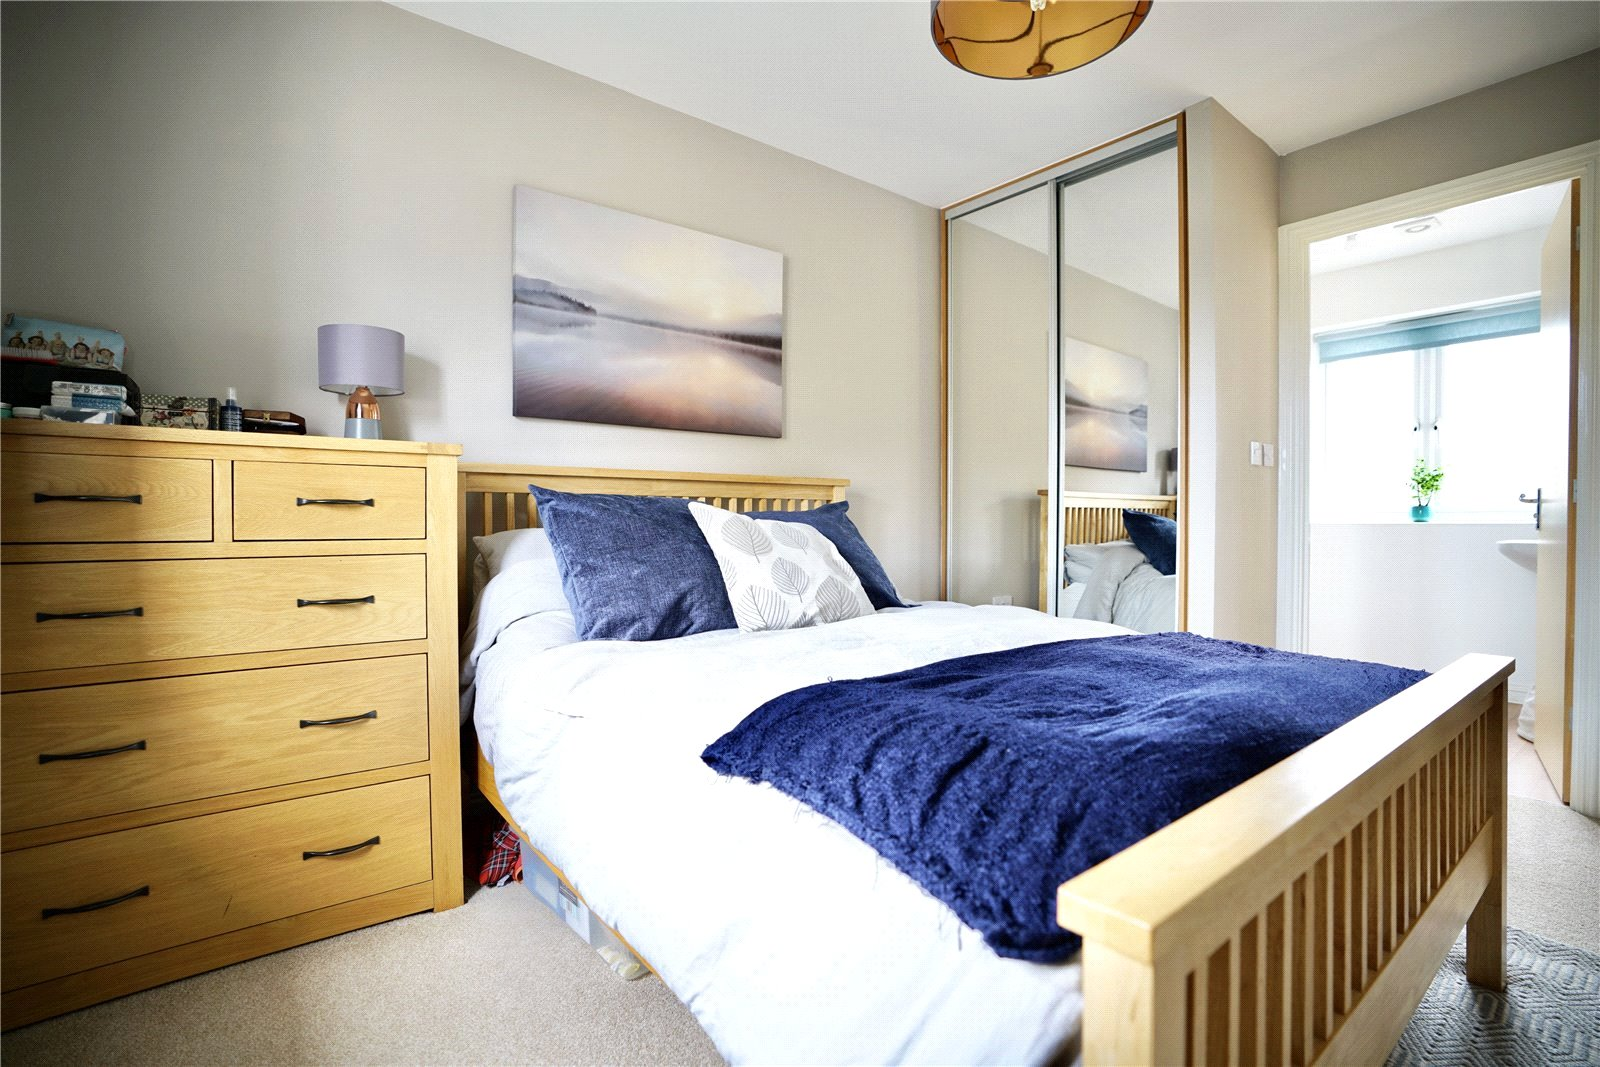 3 bed house for sale in St. Ives, PE27 5DL 13